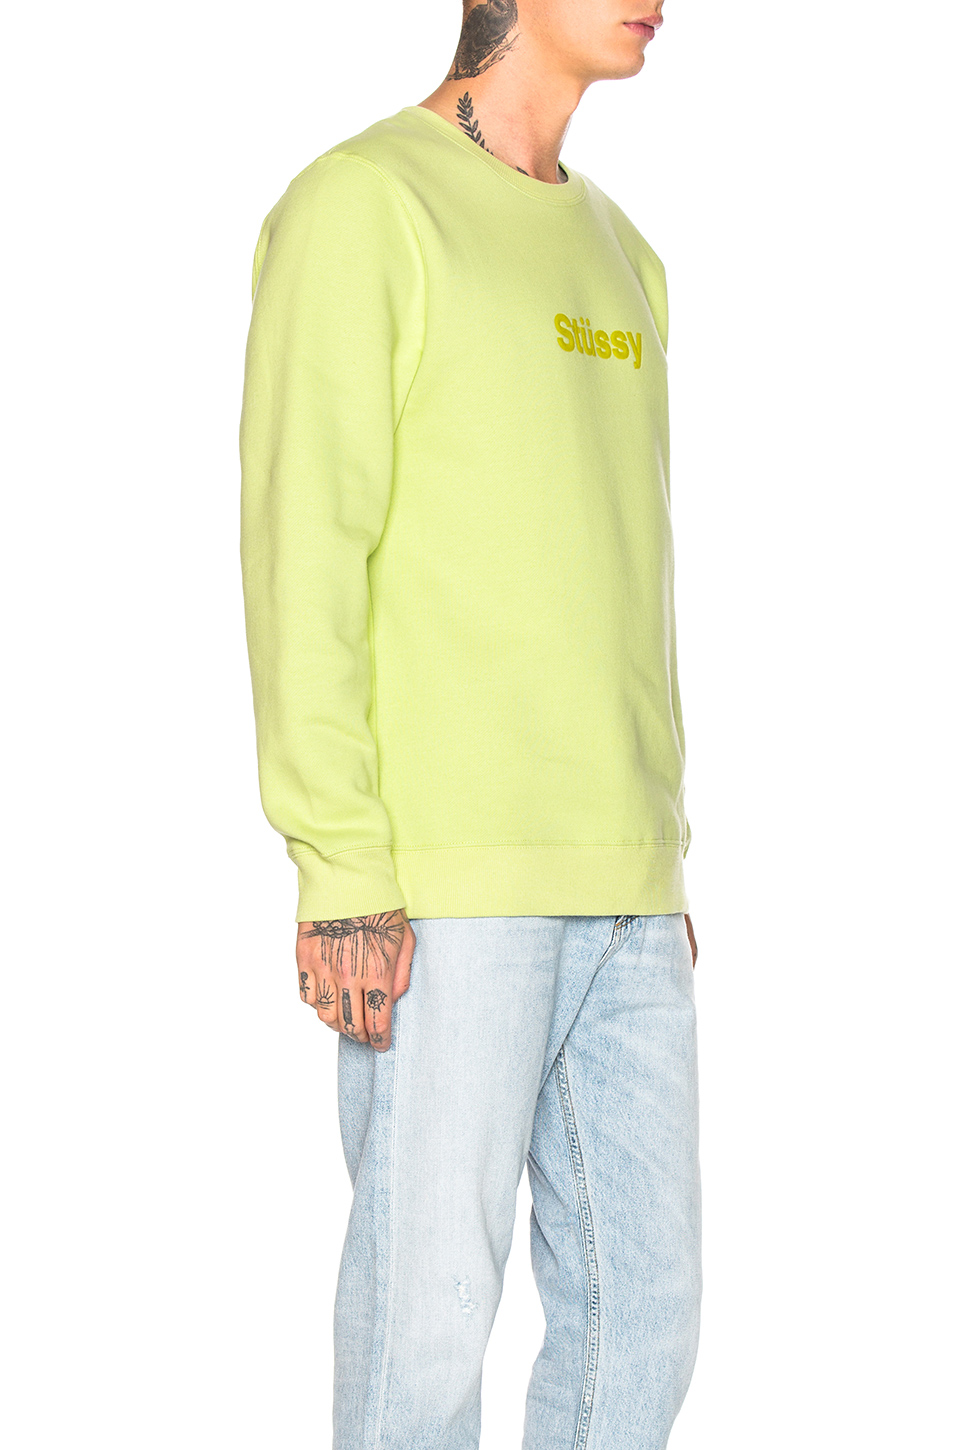 Stussy Design Applique Crew